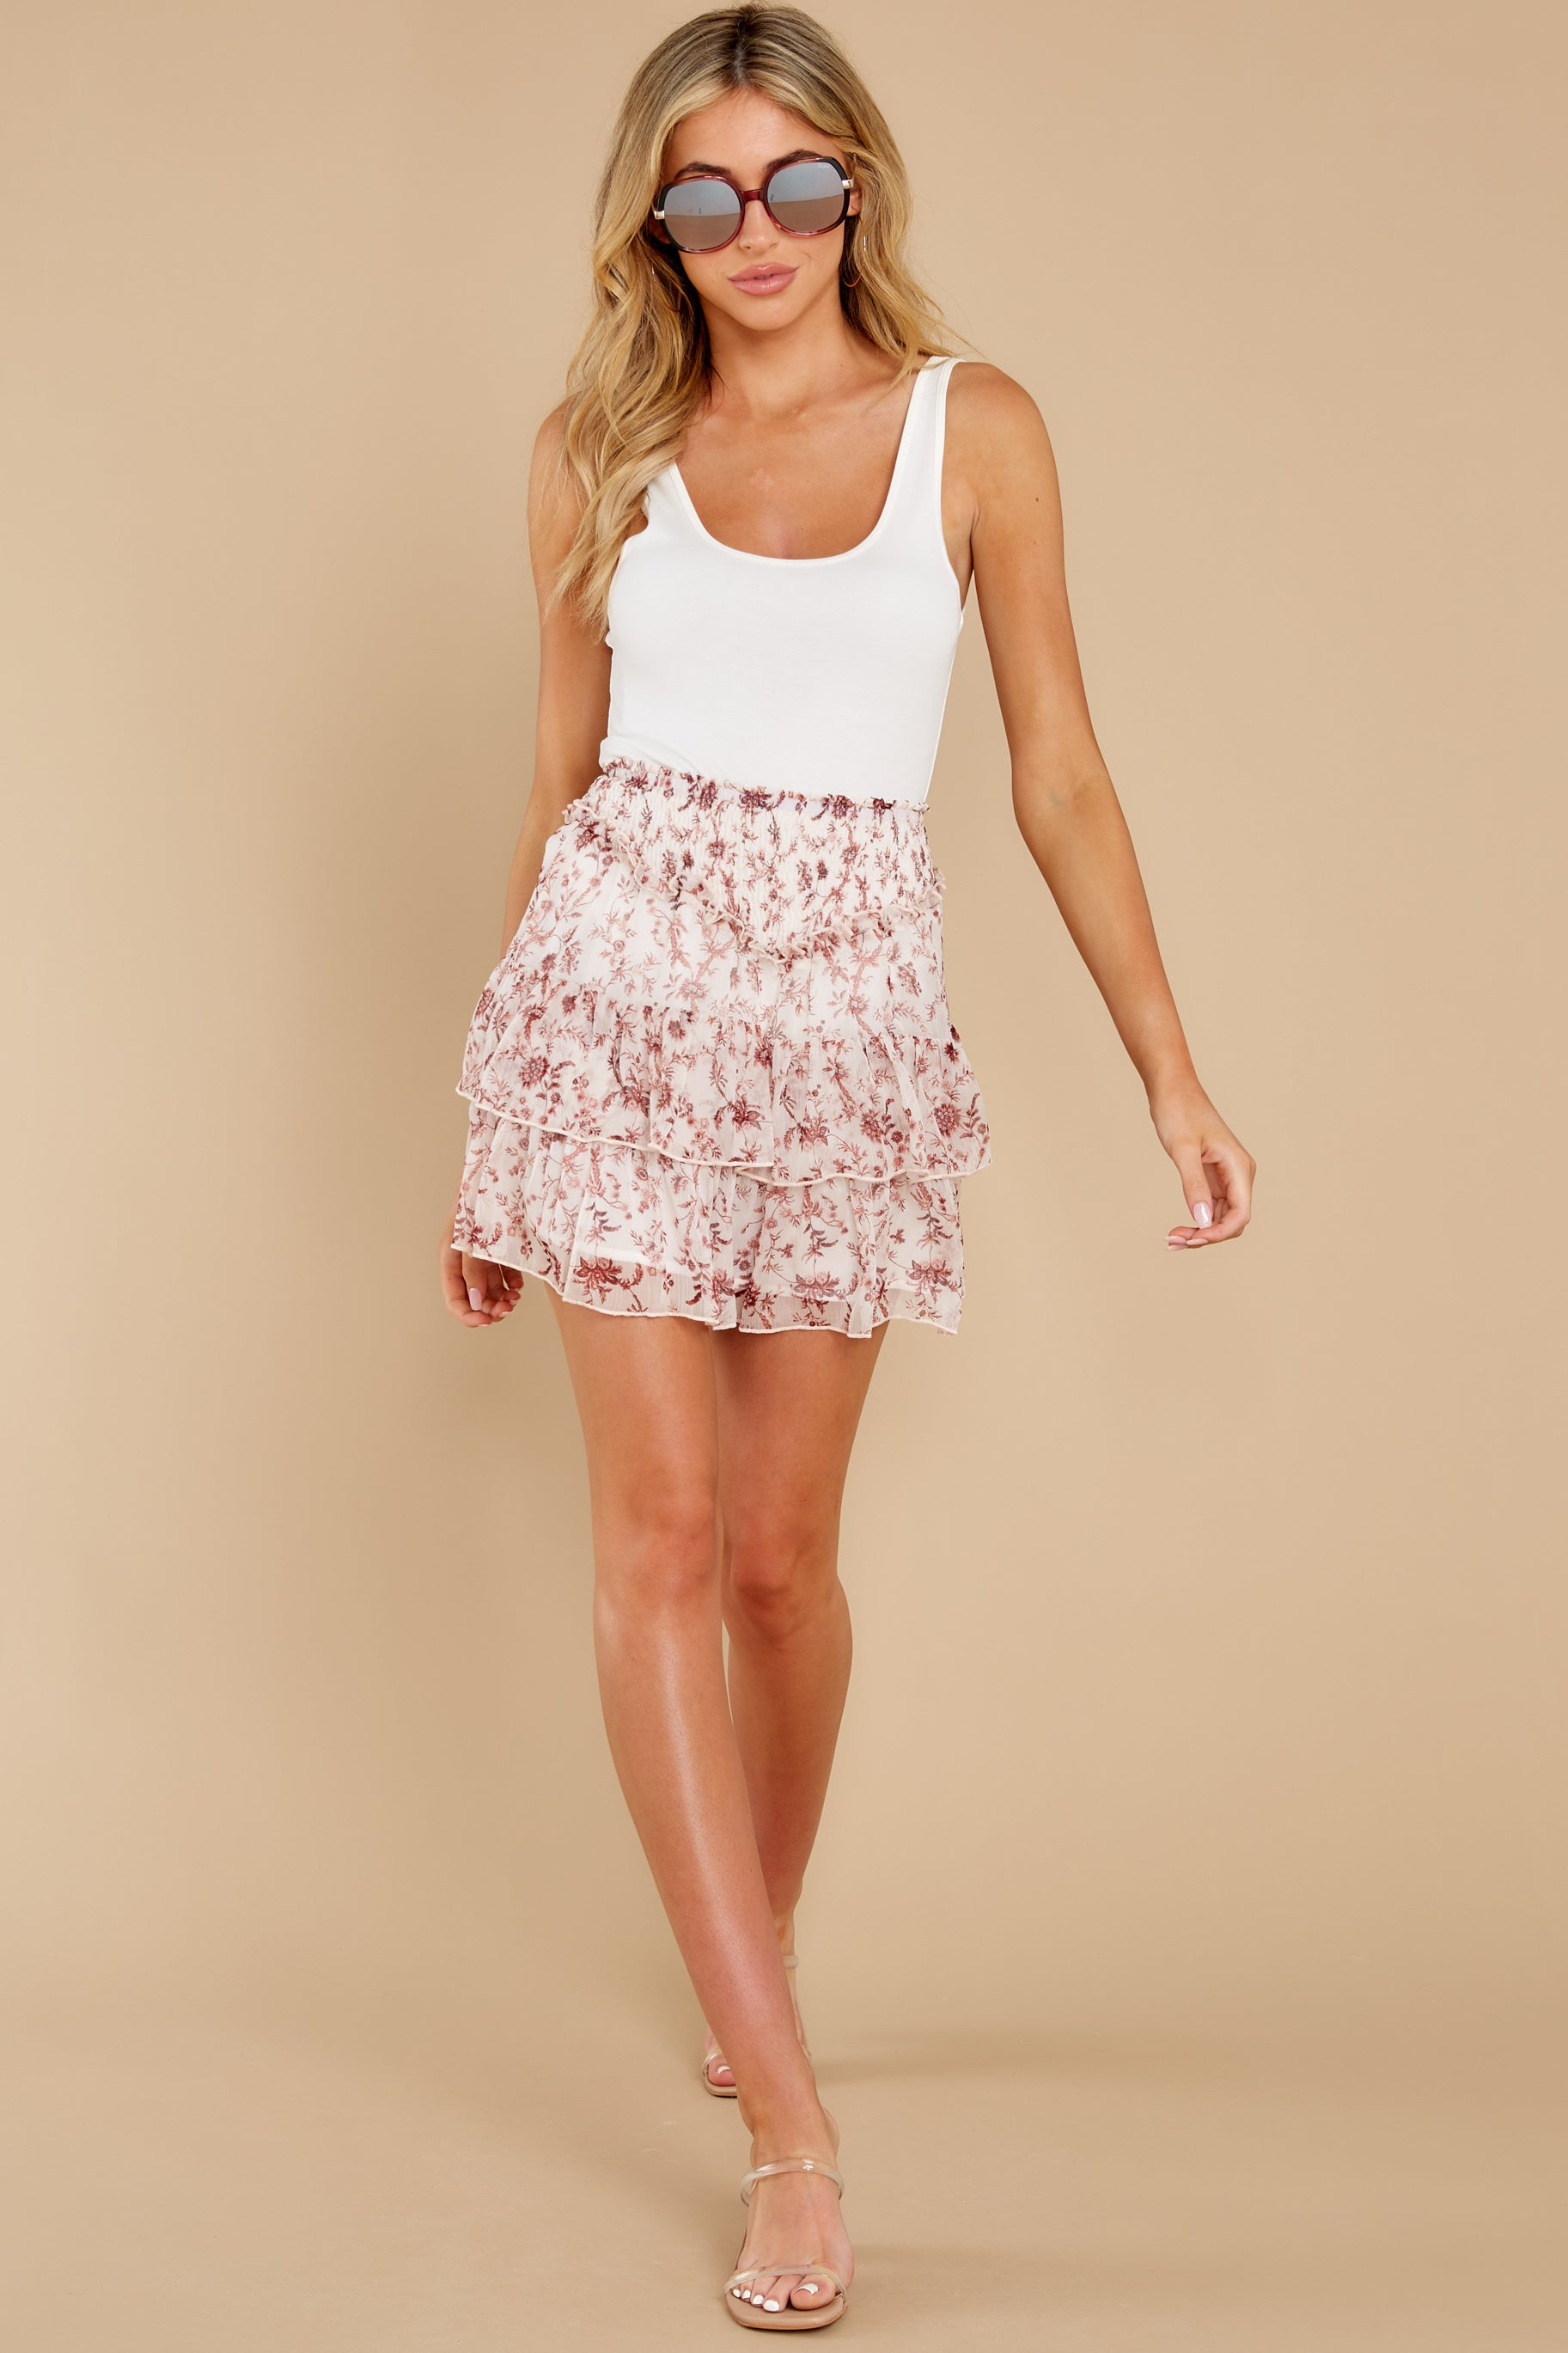 4 Melannie White Print Mini Skirt at reddress.com